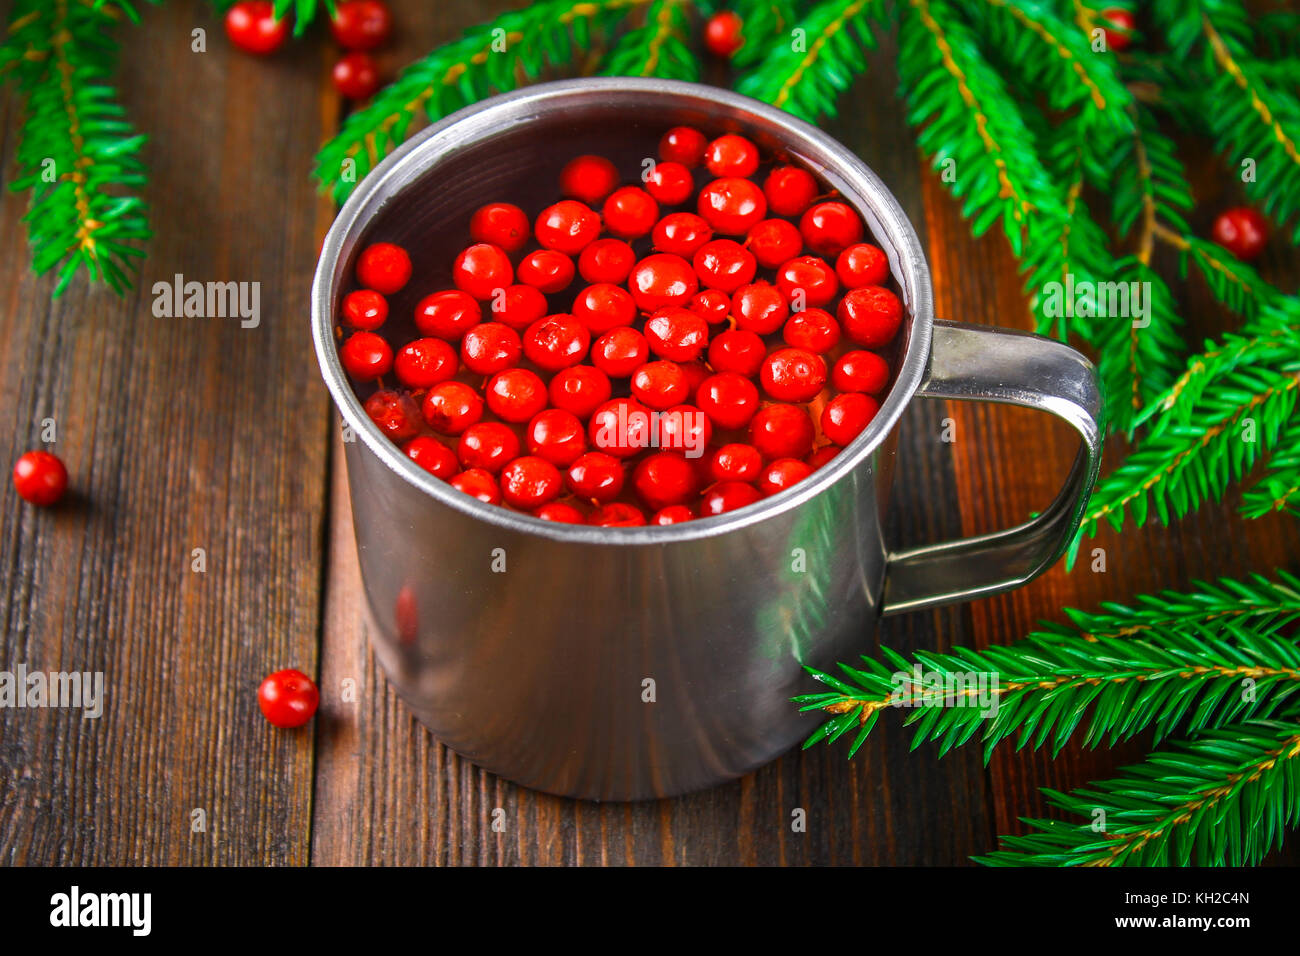 Morse or tea from cowberry in a tin mug, surrounded by fir branches on a wooden table - Stock Image